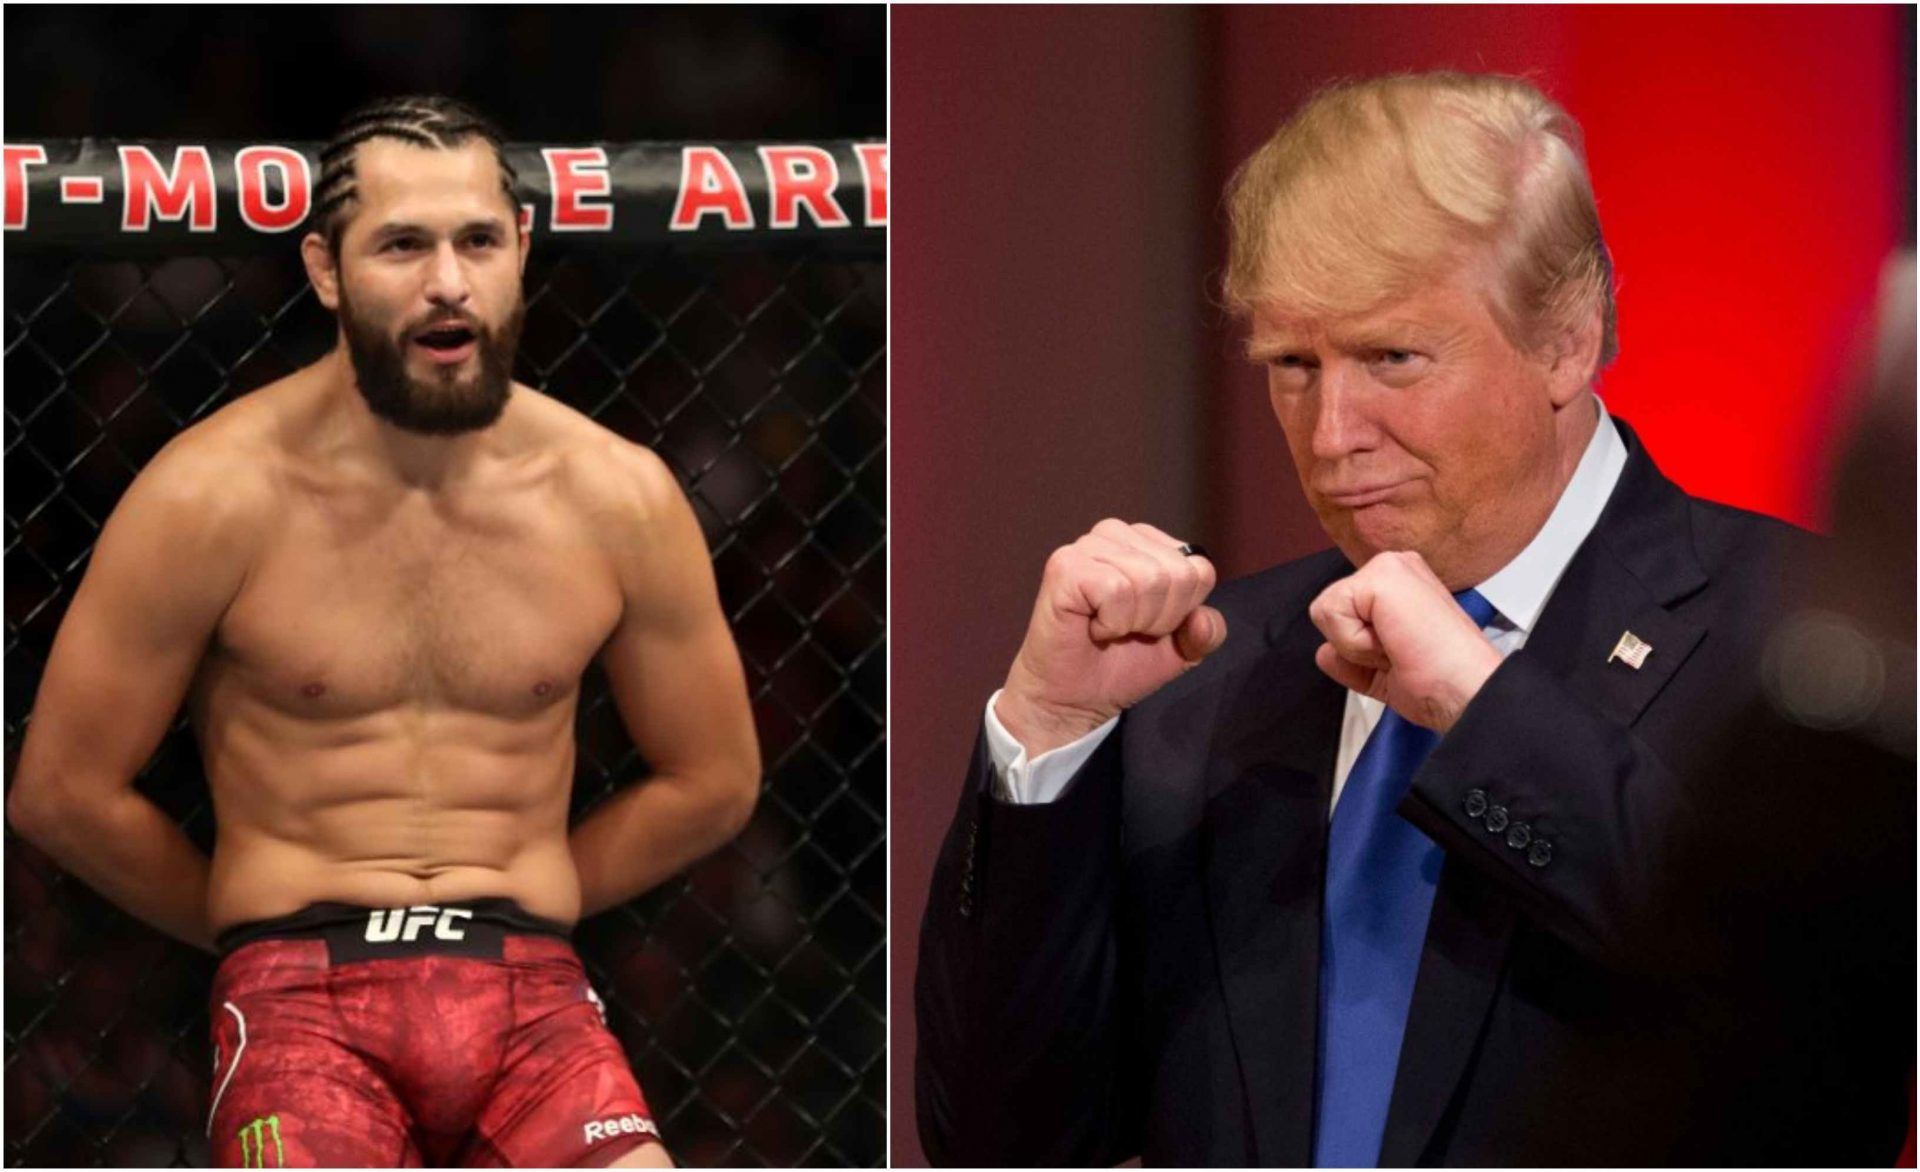 Masvidal seen urging supporters to elect Donald Trump once again - Masvidal